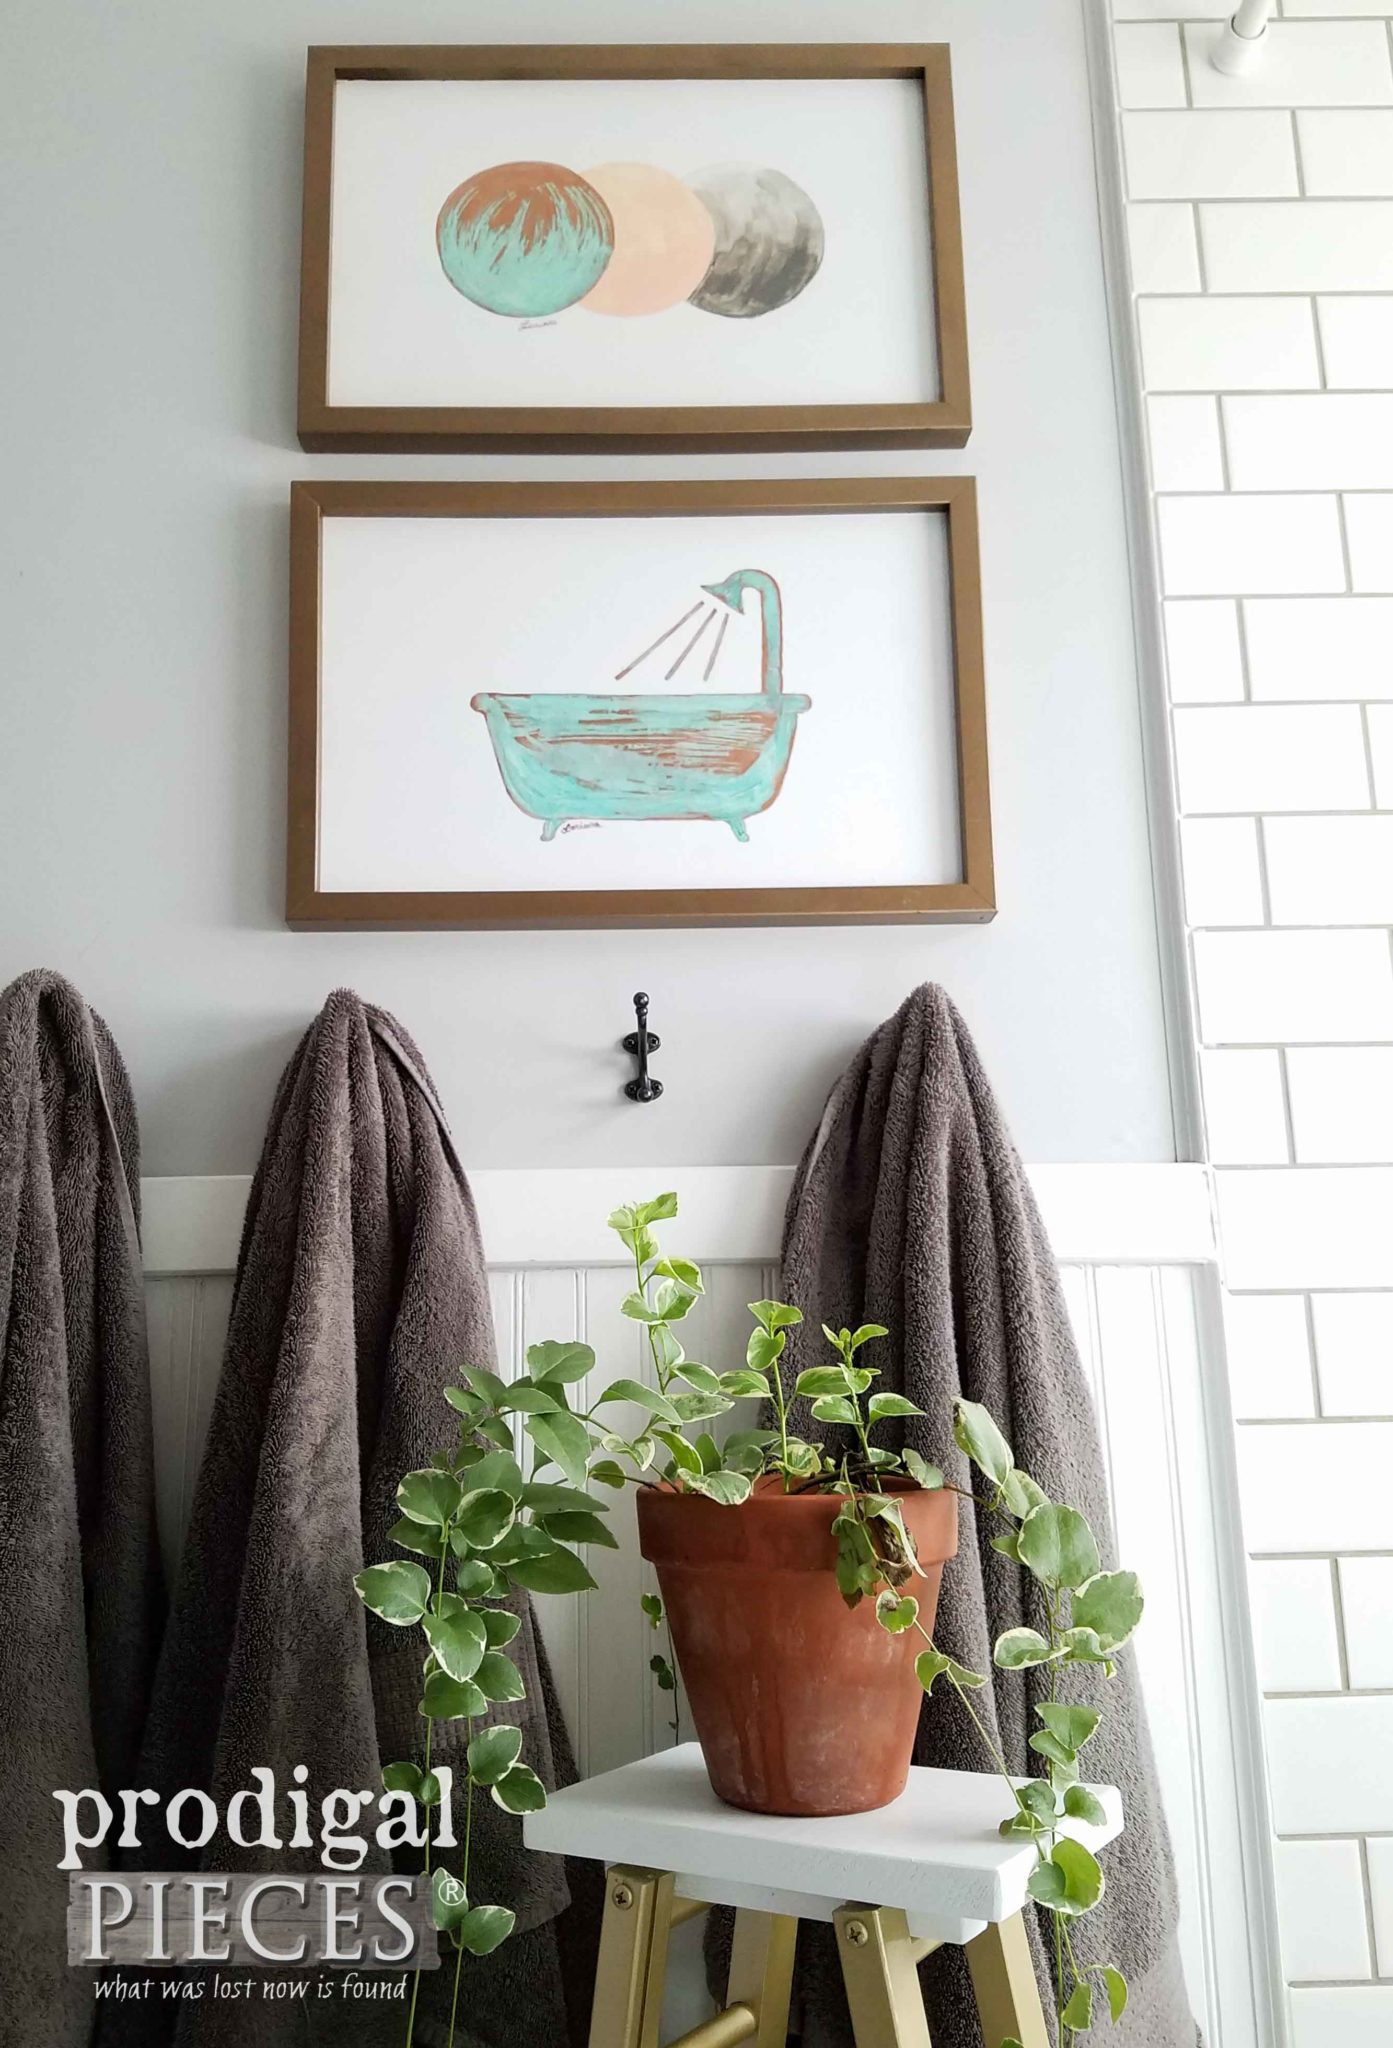 Boho Chic Bathroom Decor with Copper Wall Art by Prodigal Pieces | prodigalpieces.com